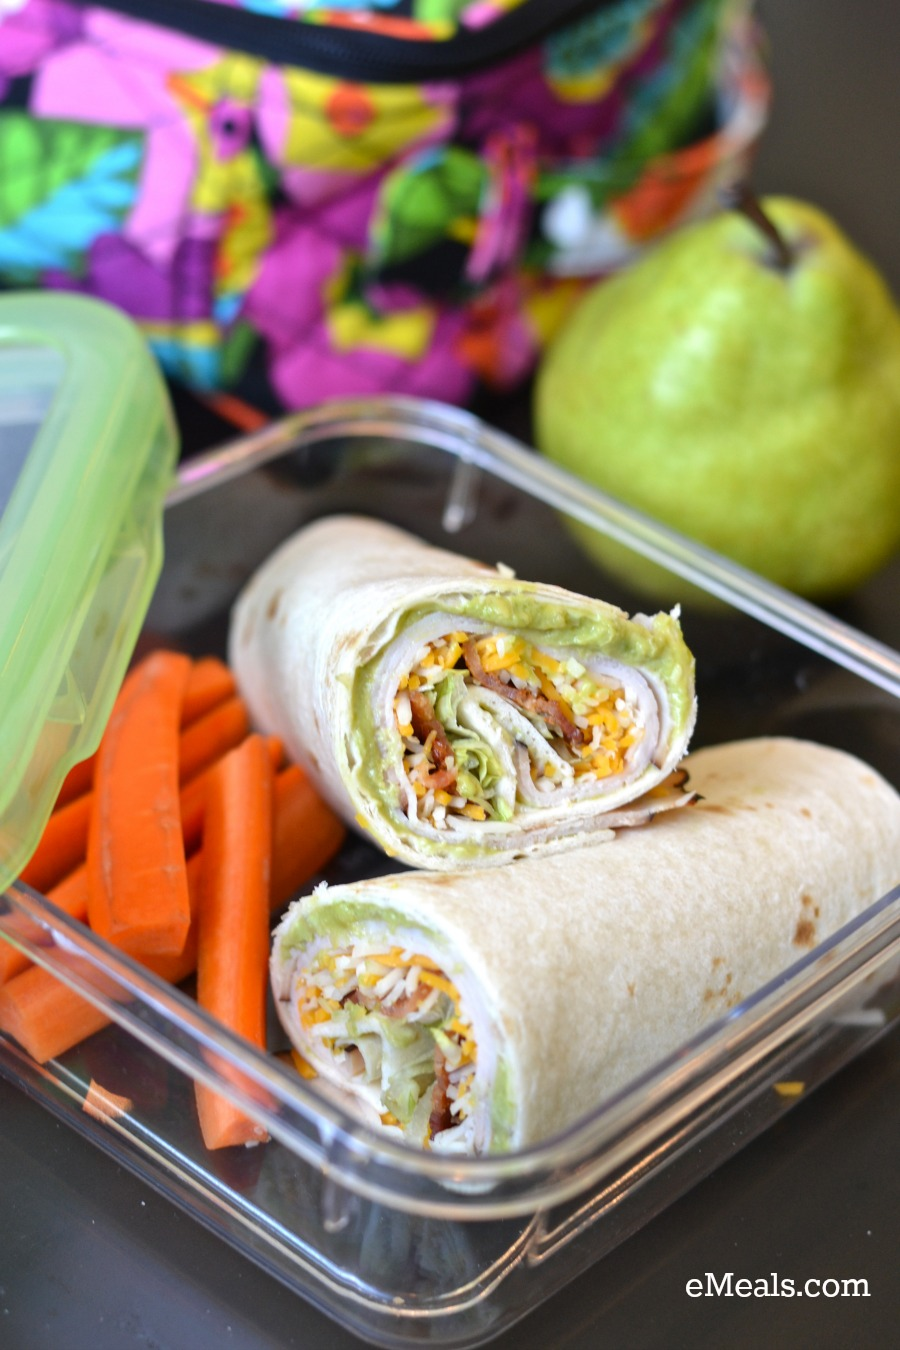 Turkey-Bacon Tortilla Roll-ups from eMeals